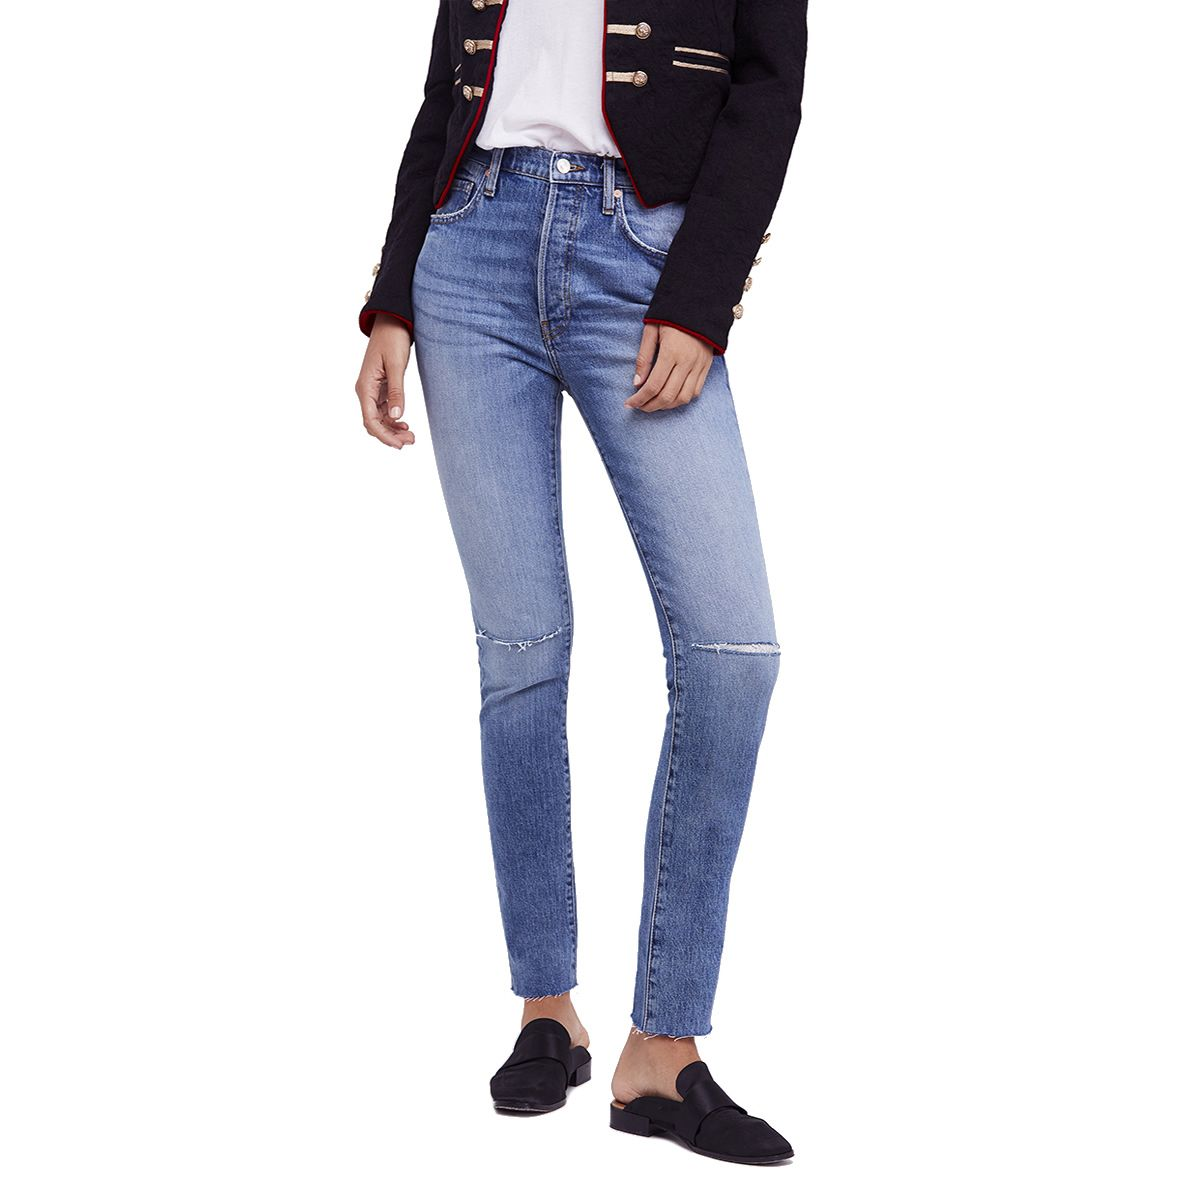 4fc742ffc68996 Free People Jeans For Women - Macy's